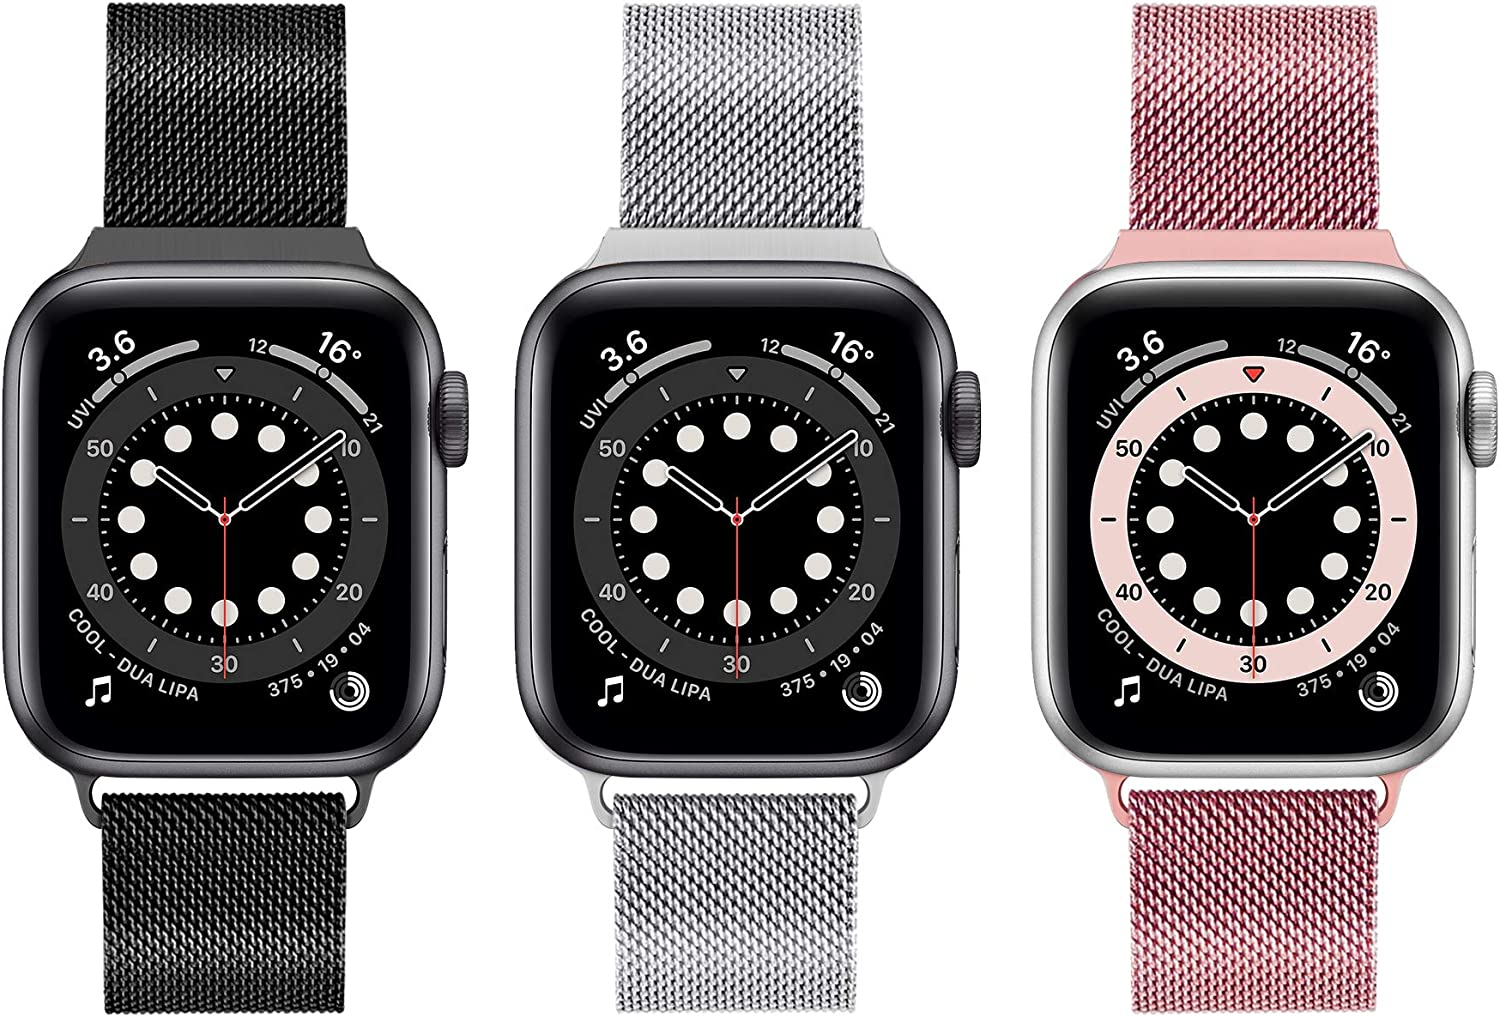 3 Pack Magnetic iWatch Band Compatible with Apple Watch 38mm 40mm 42 mm 44mm Stainless Steel Mesh Loop Metal Band Replacement for iWatch Apple Watch Series 1/2/3/4/5/6/SE